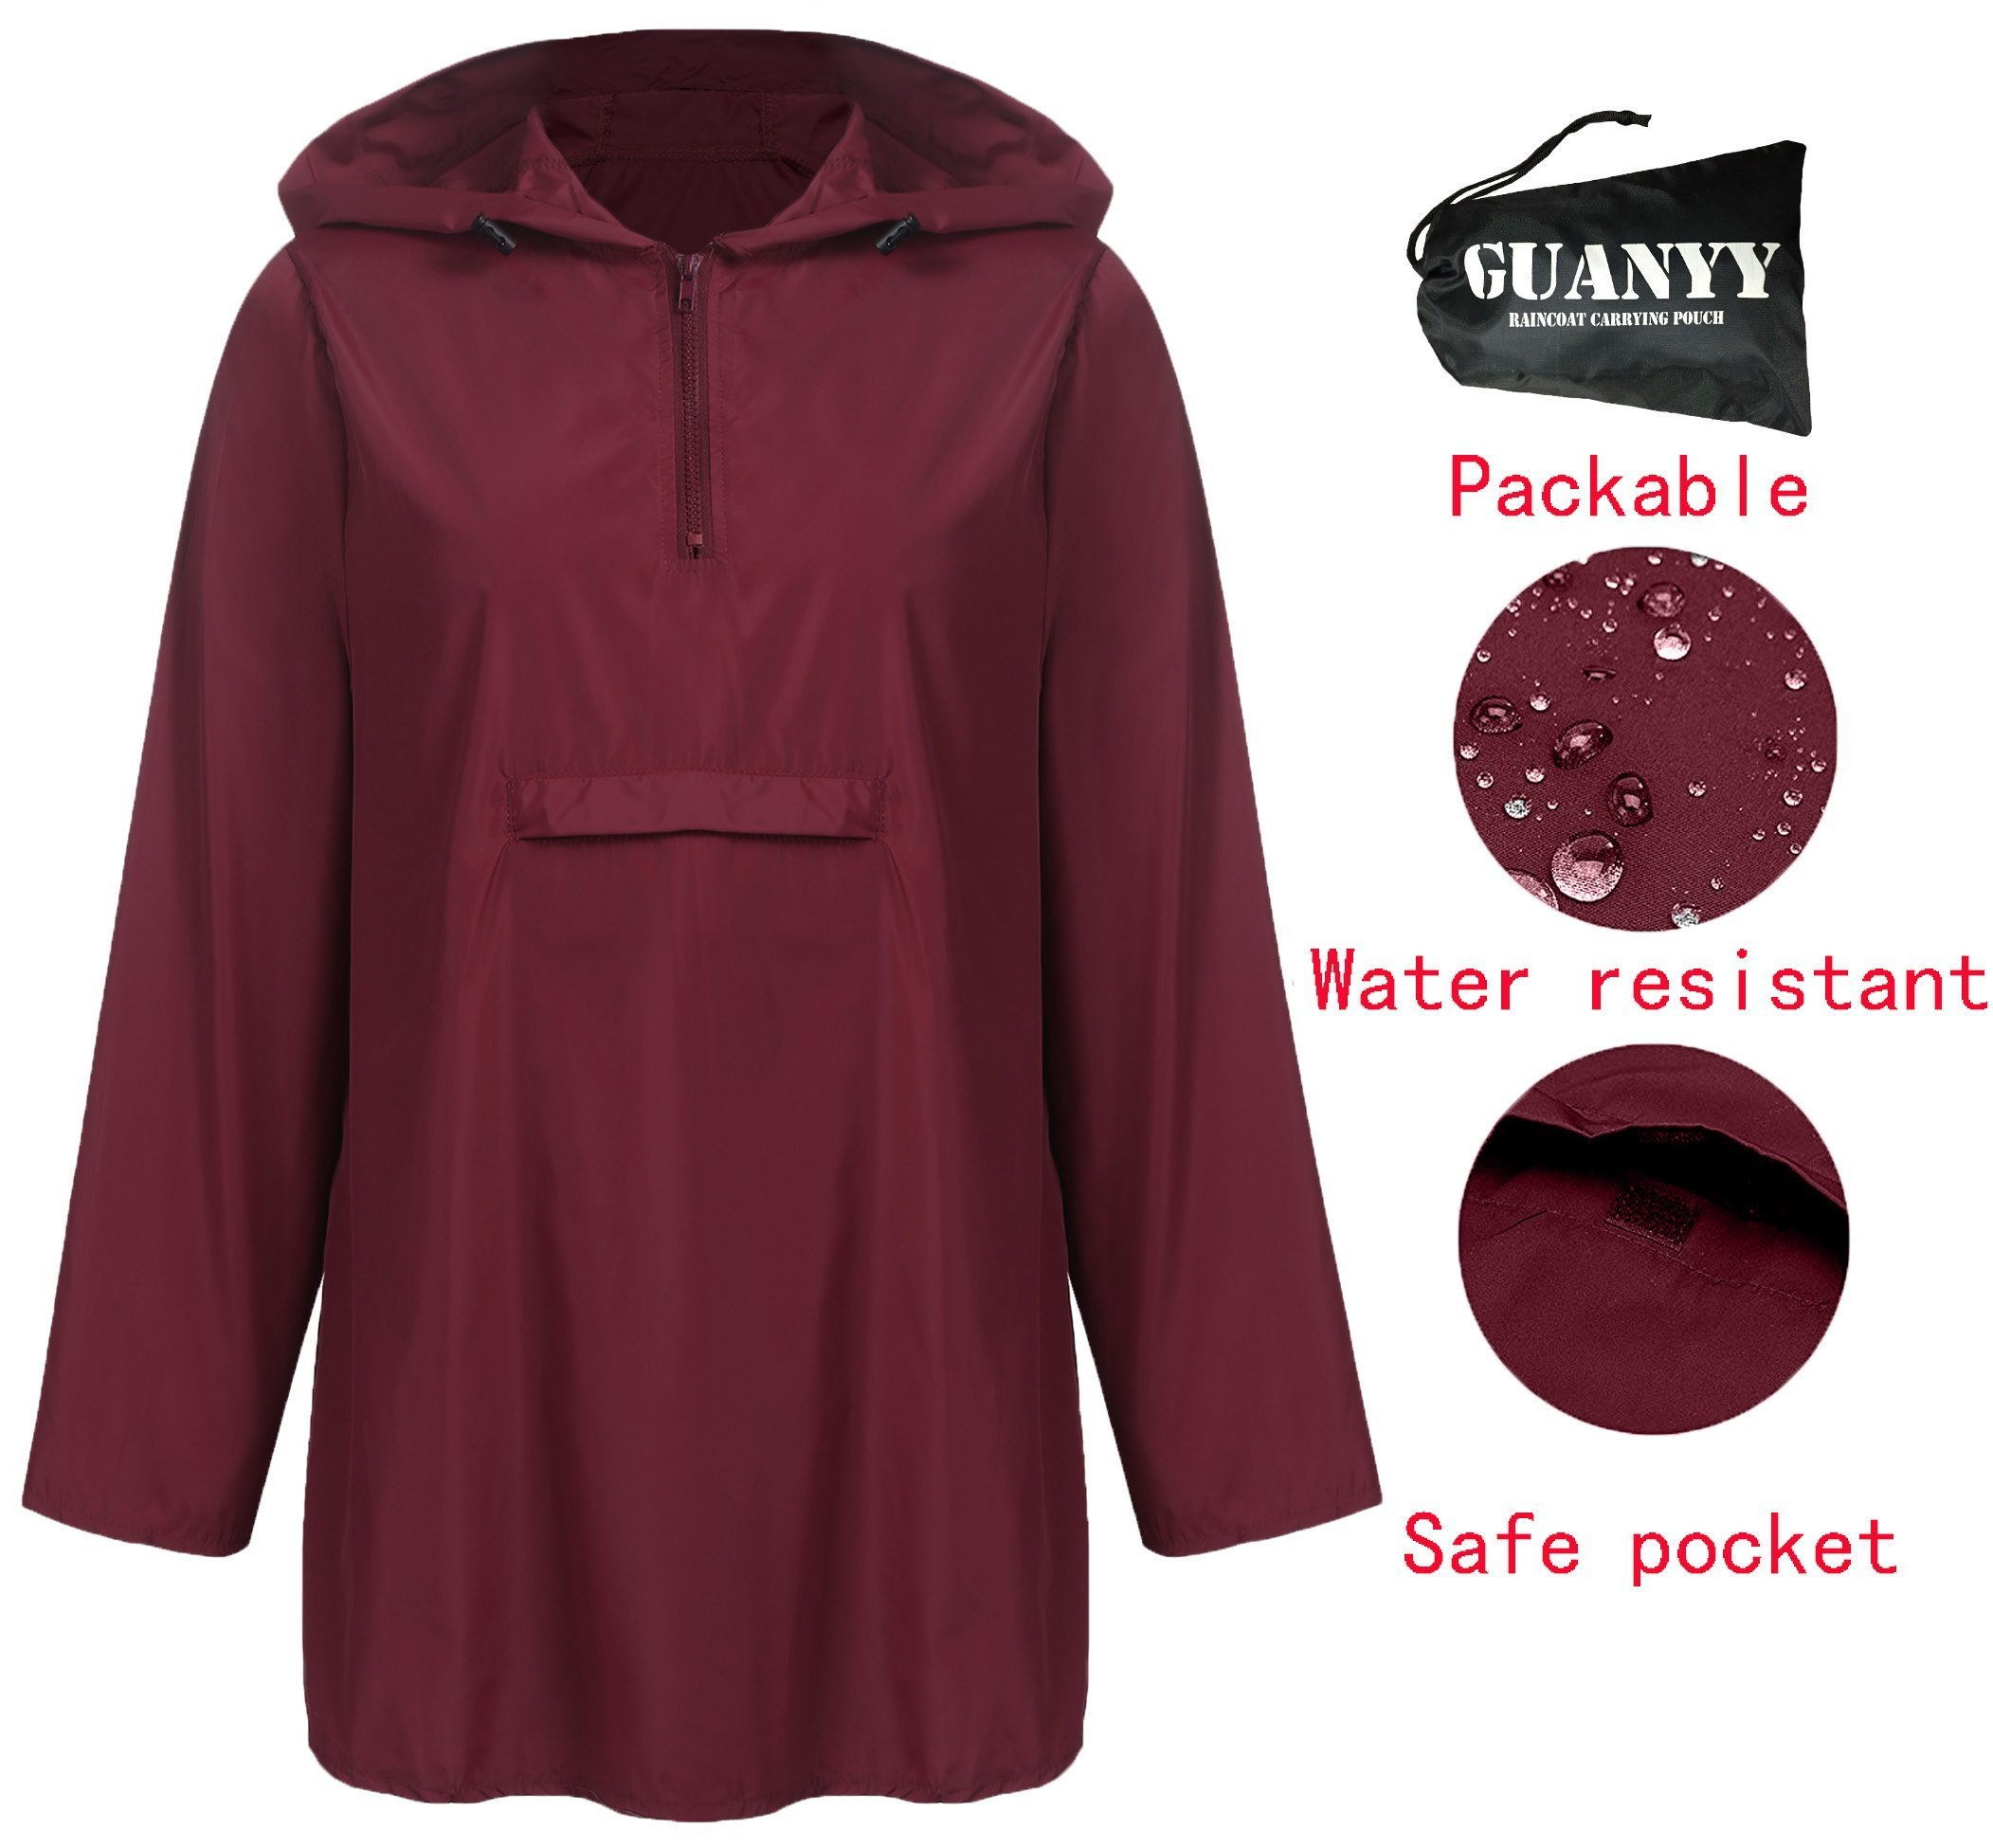 GUANYY Women's Waterproof Raincoat Outdoor Hooded Lightweight Windbreaker Jacket(Wine Red,Large)